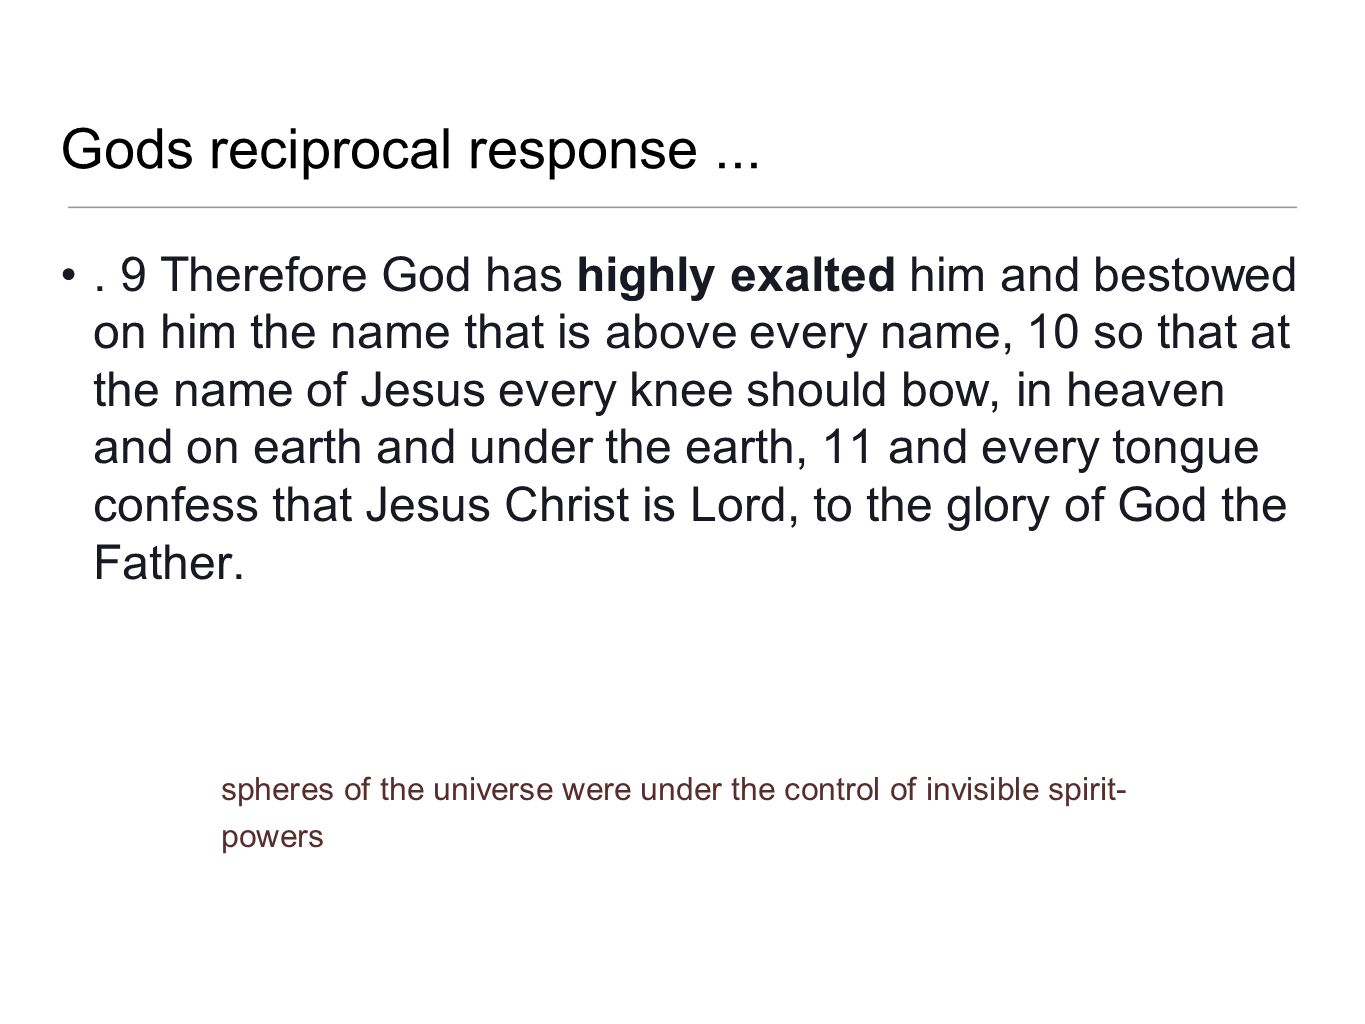 Gods reciprocal response.... 9 Therefore God has highly exalted him and bestowed on him the name that is above every name, 10 so that at the name of J